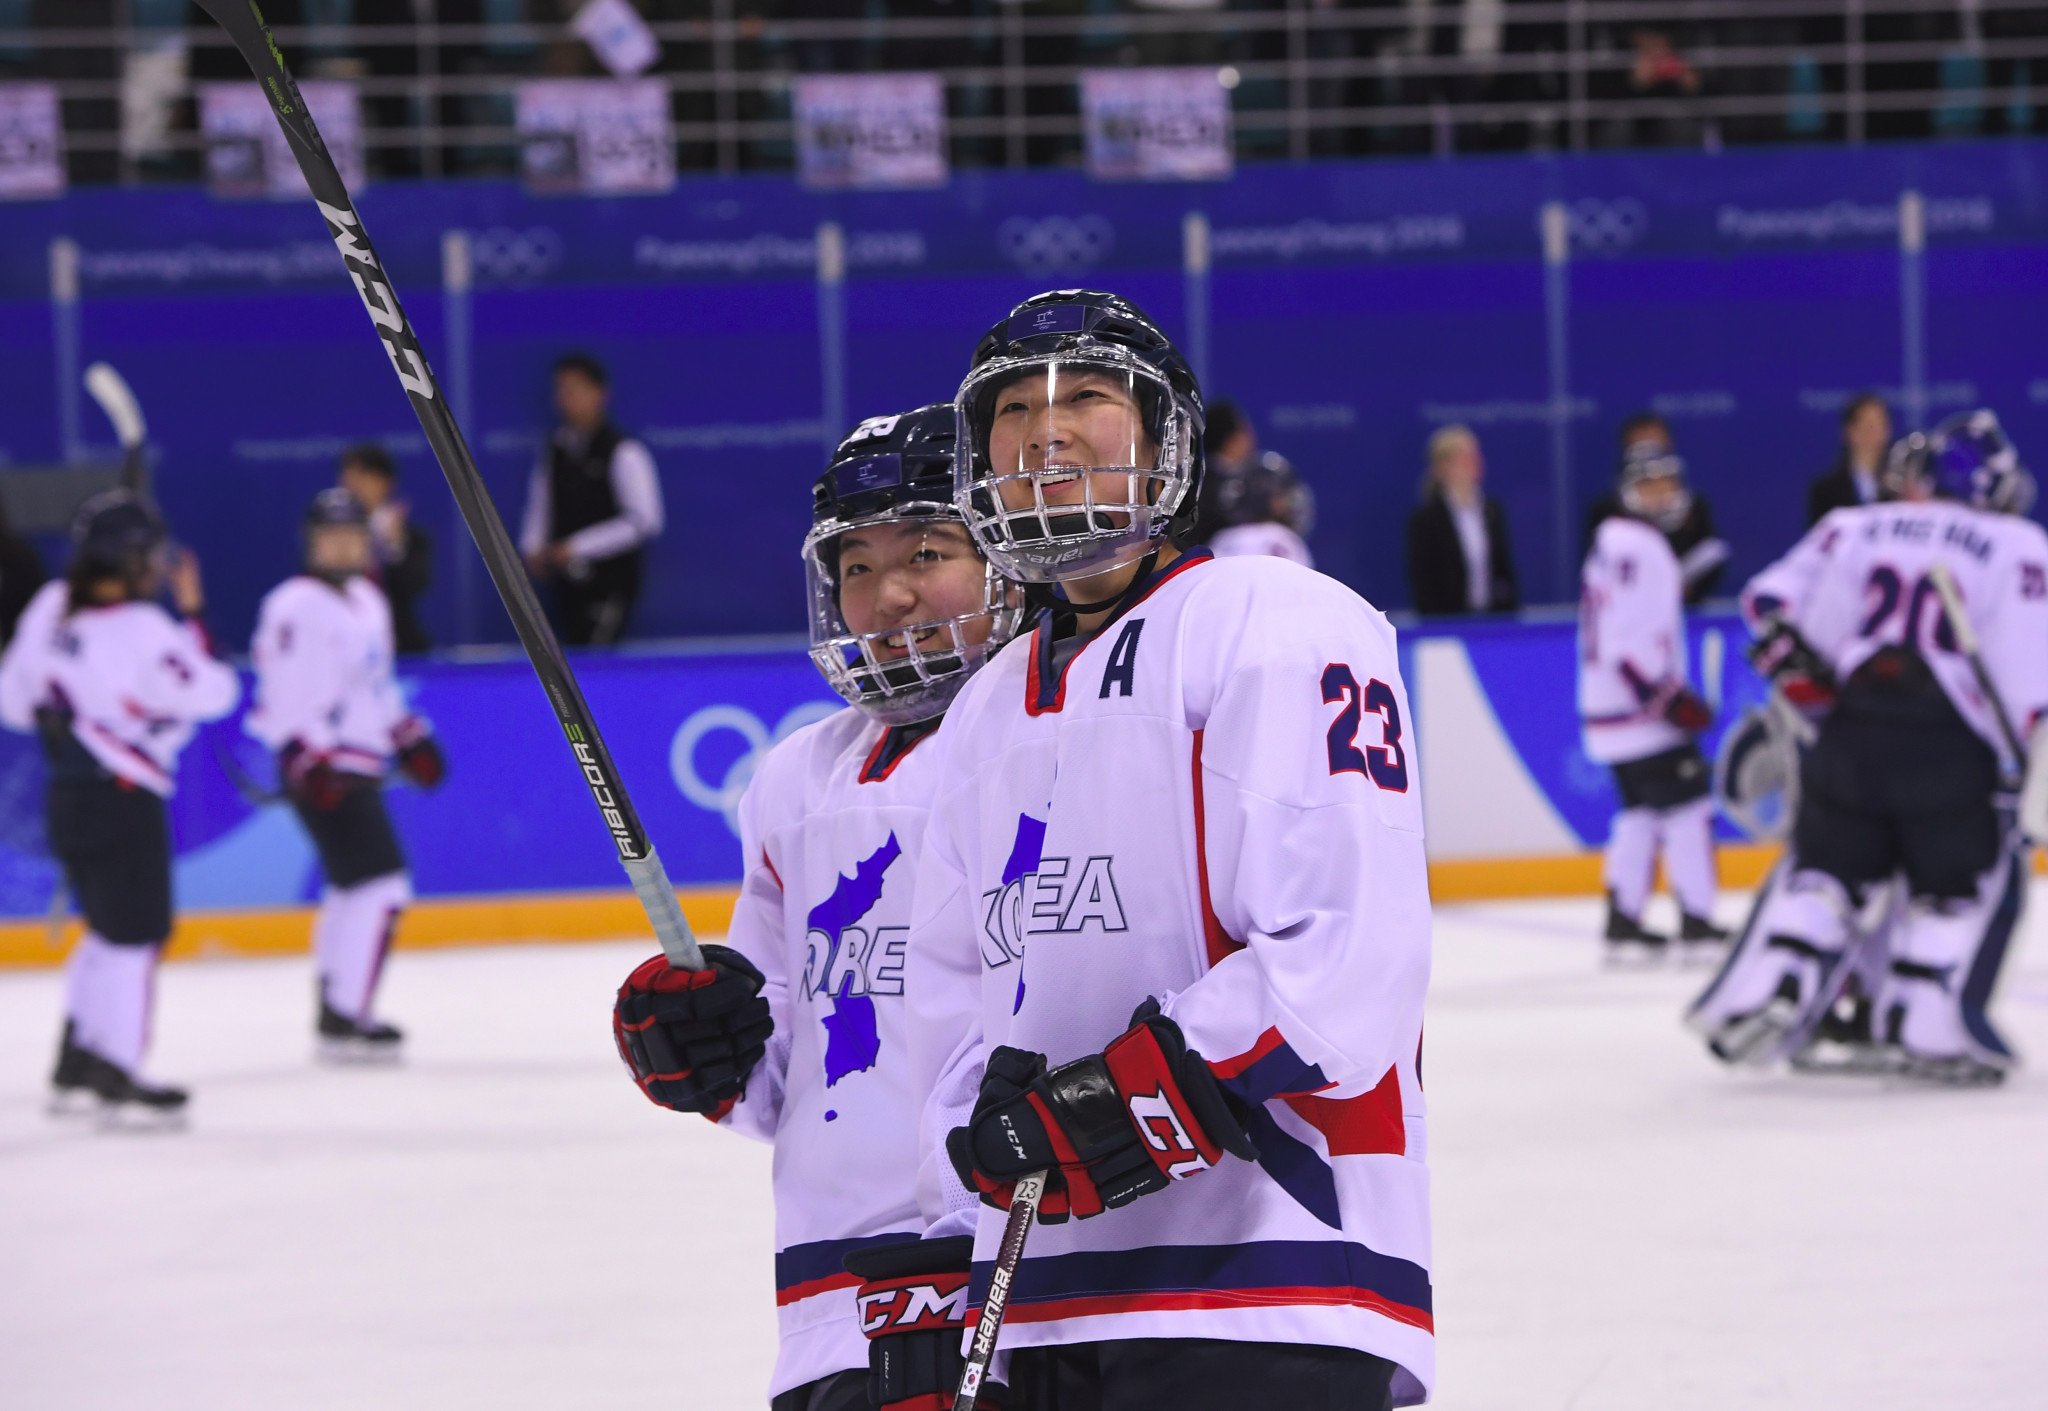 Korea formed a unified women's ice hockey team at Pyeongchang 2018 ©Getty Images